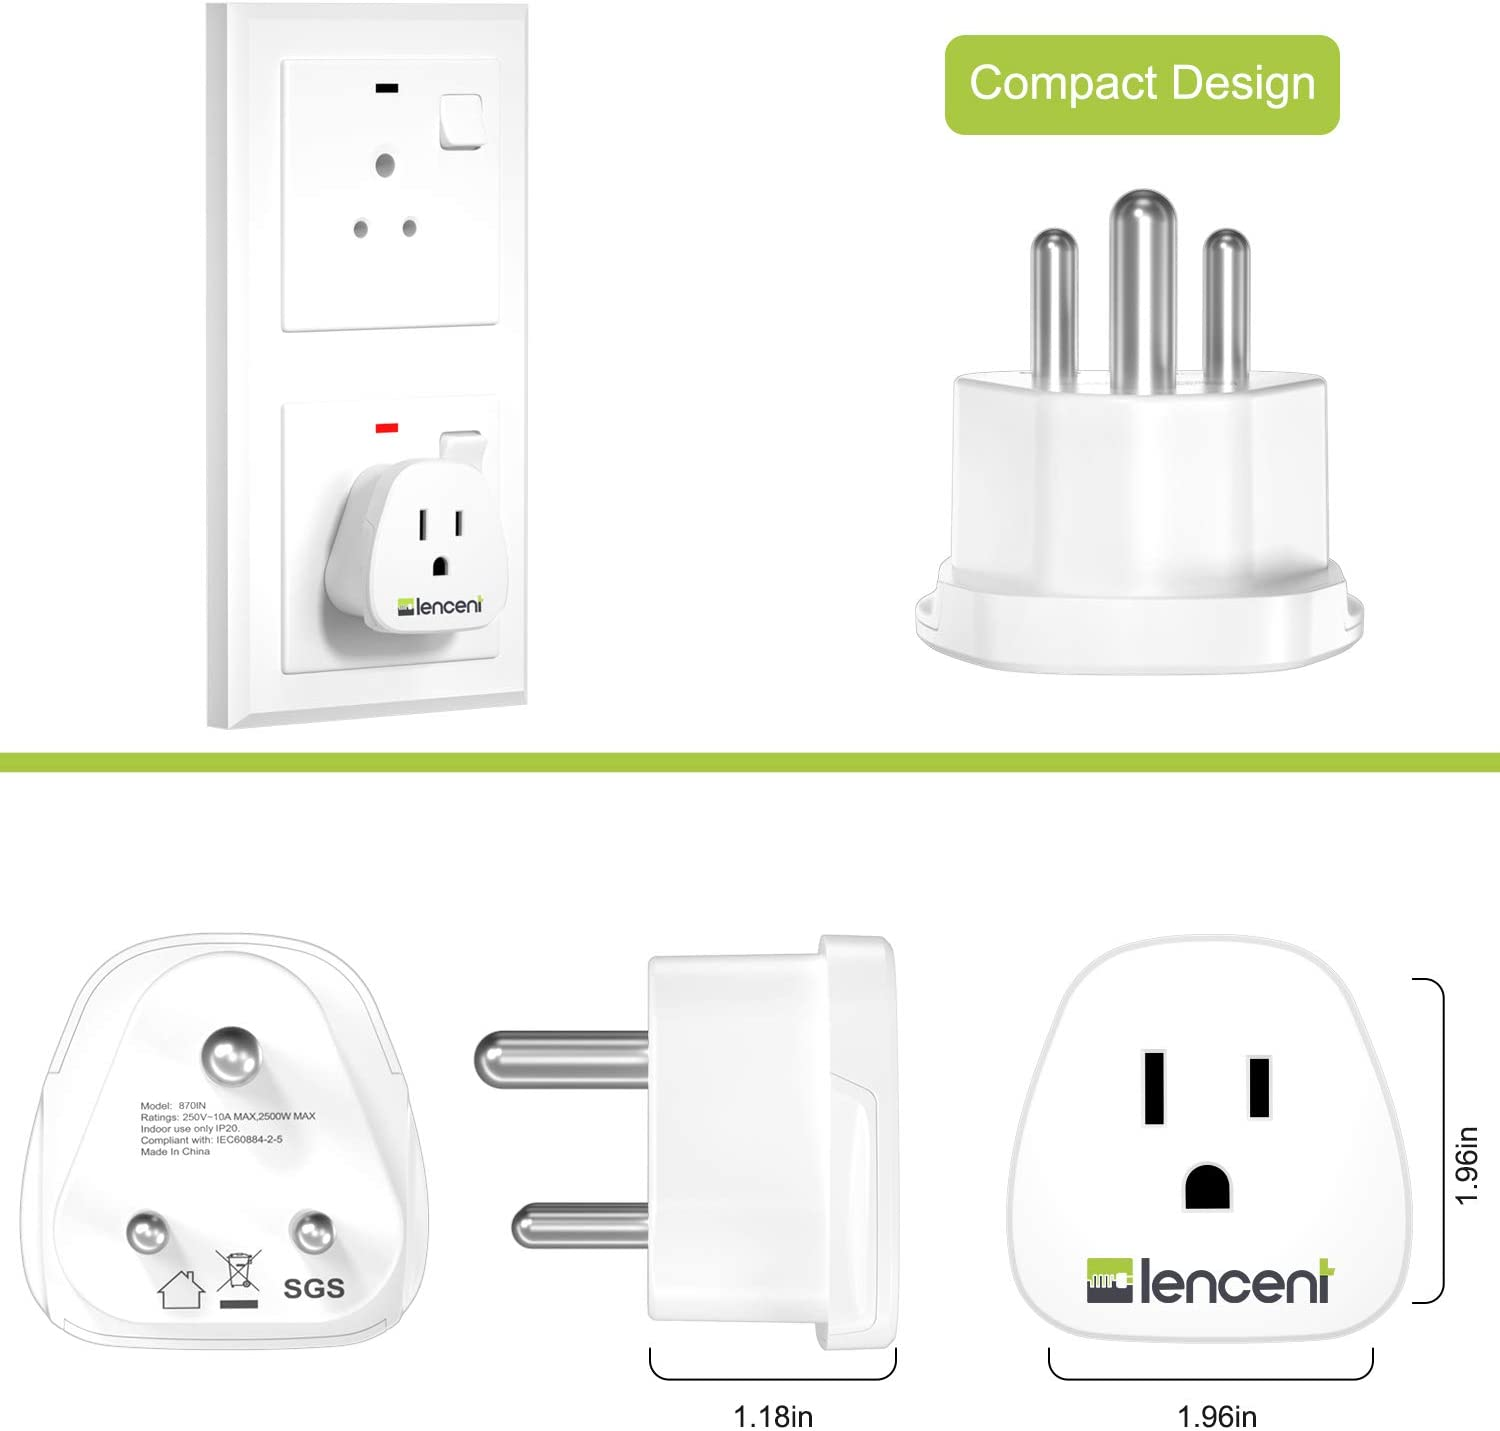 - Grounded /& Universal Nepal Bangladesh - 2 Pack,US to India Power Adapter Type D LENCENT India Travel Plug Adapter for Pakistan